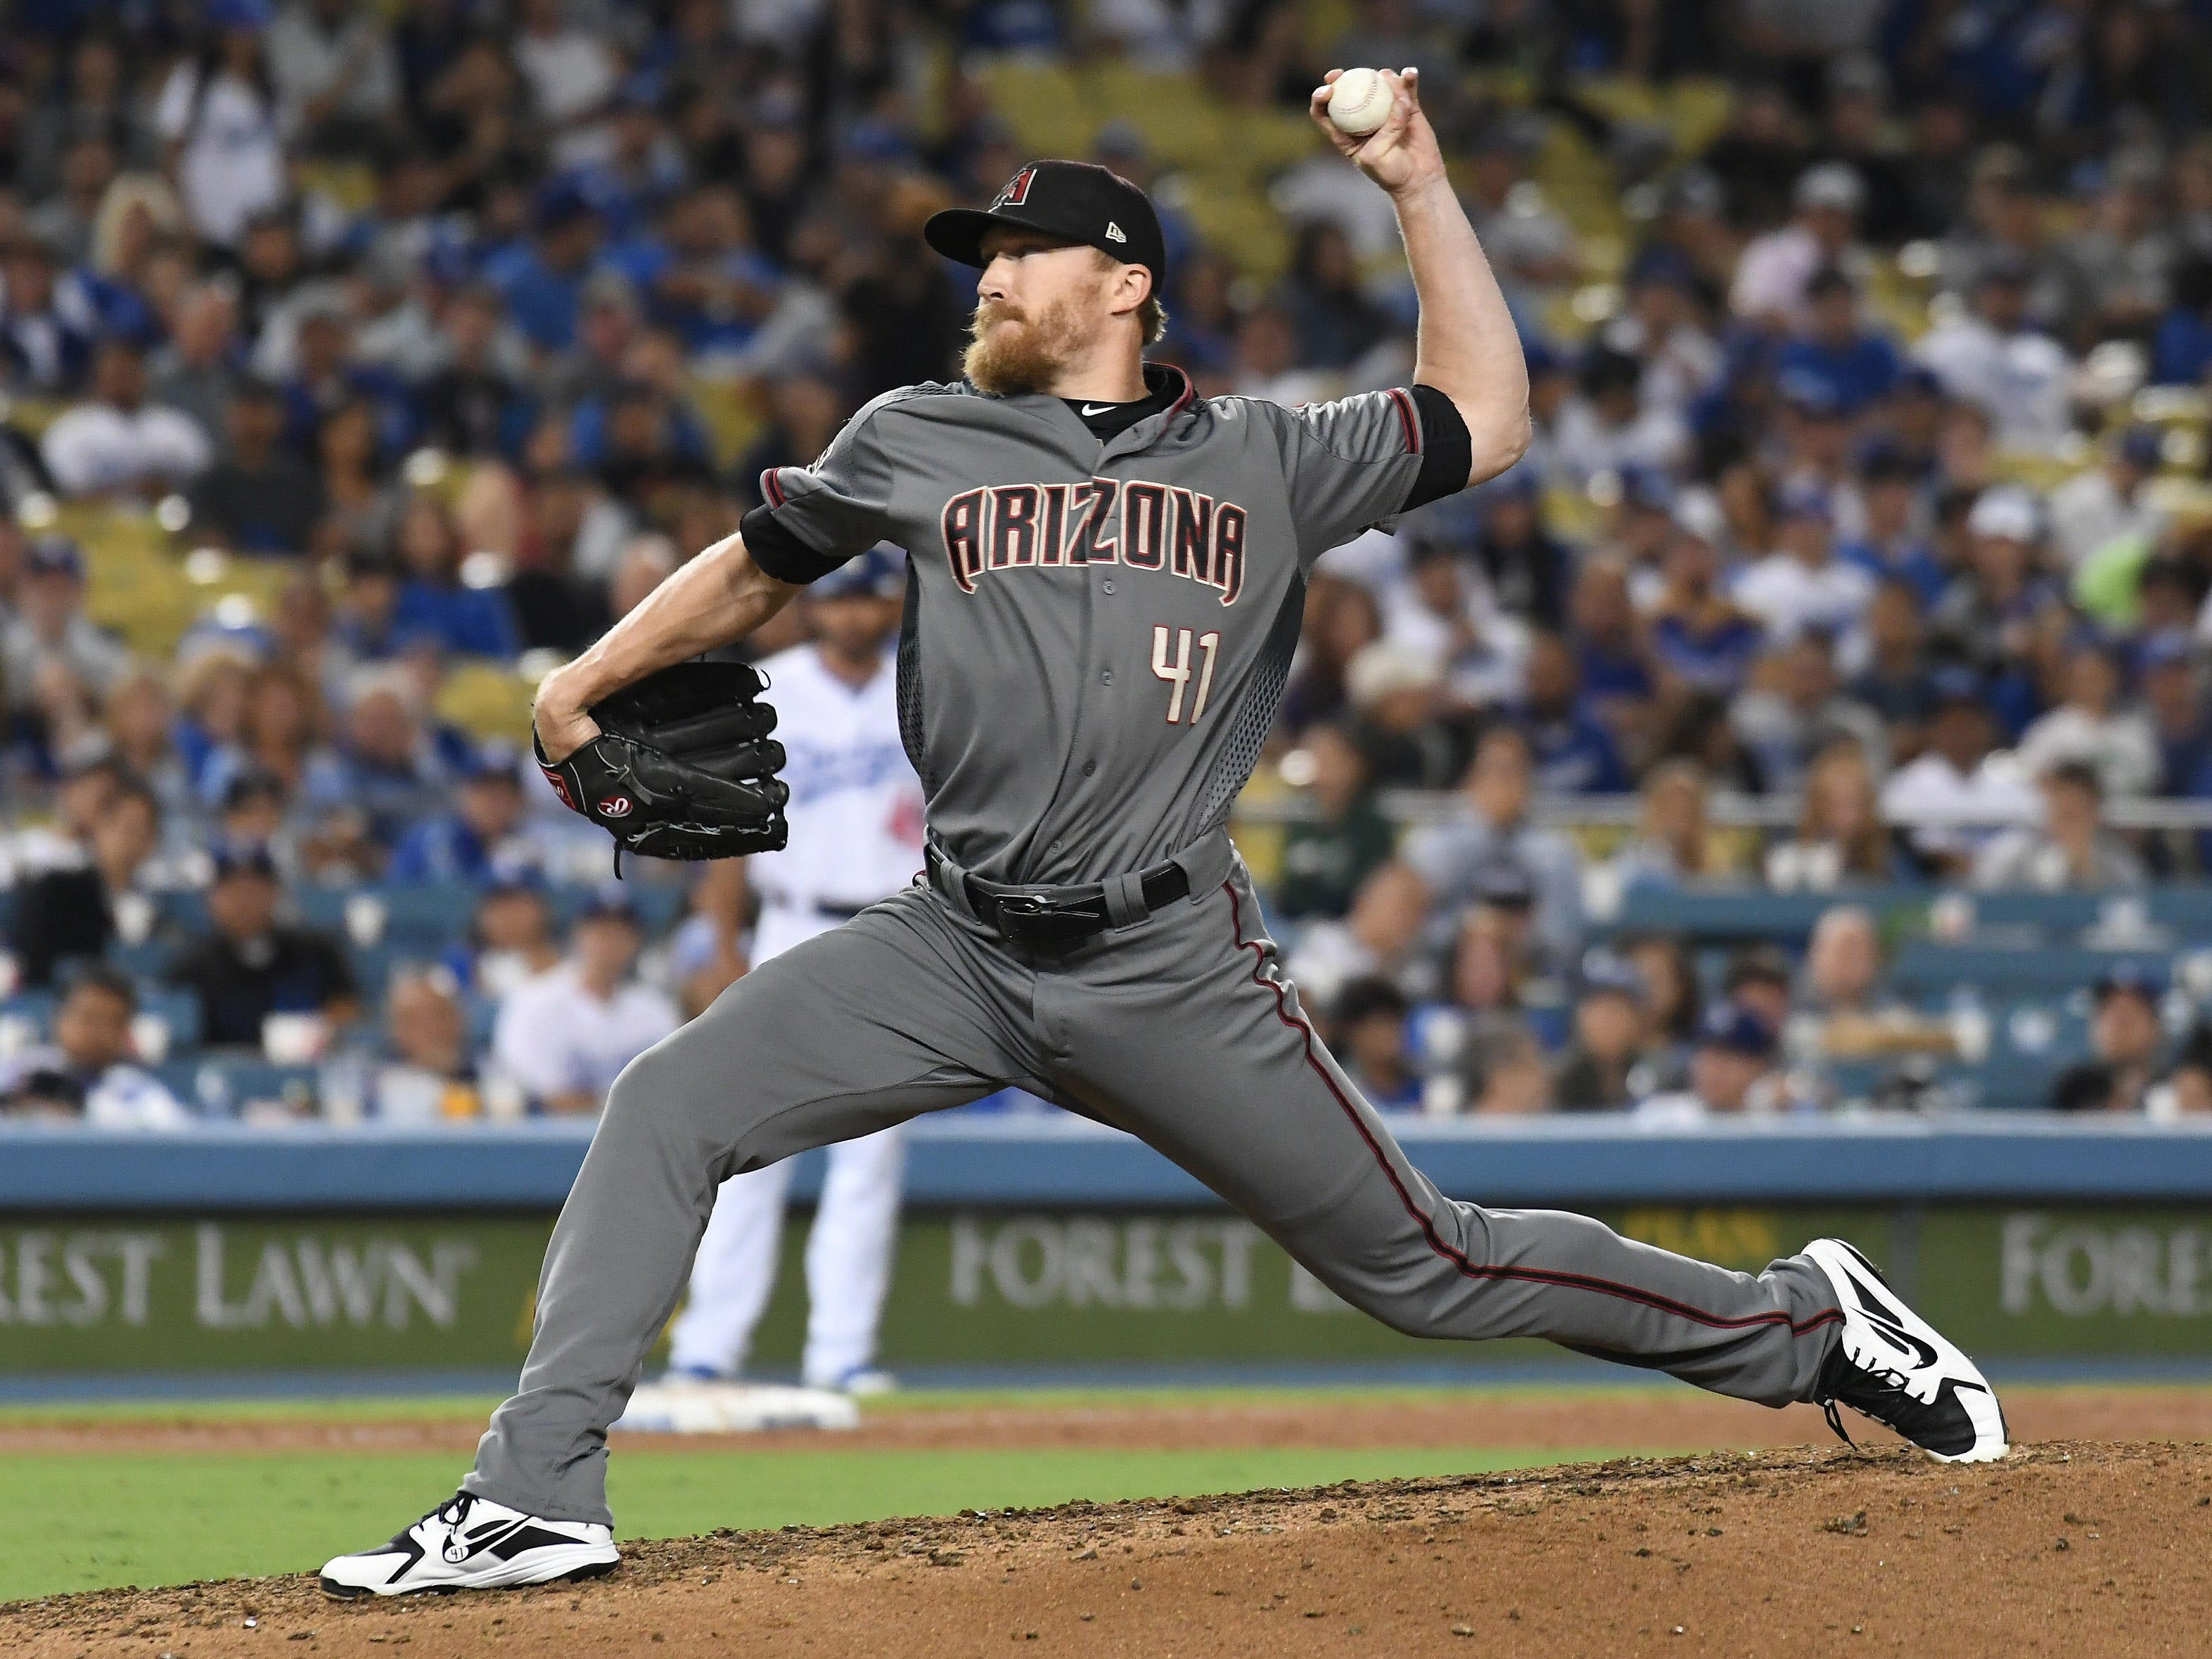 Aug 30, 2018; Los Angeles, CA, USA; Arizona Diamondbacks relief pitcher Jake Diekman (41) pitches against the Los Angeles Dodgers in the seventh inning at Dodger Stadium. Mandatory Credit: Richard Mackson-USA TODAY Sports